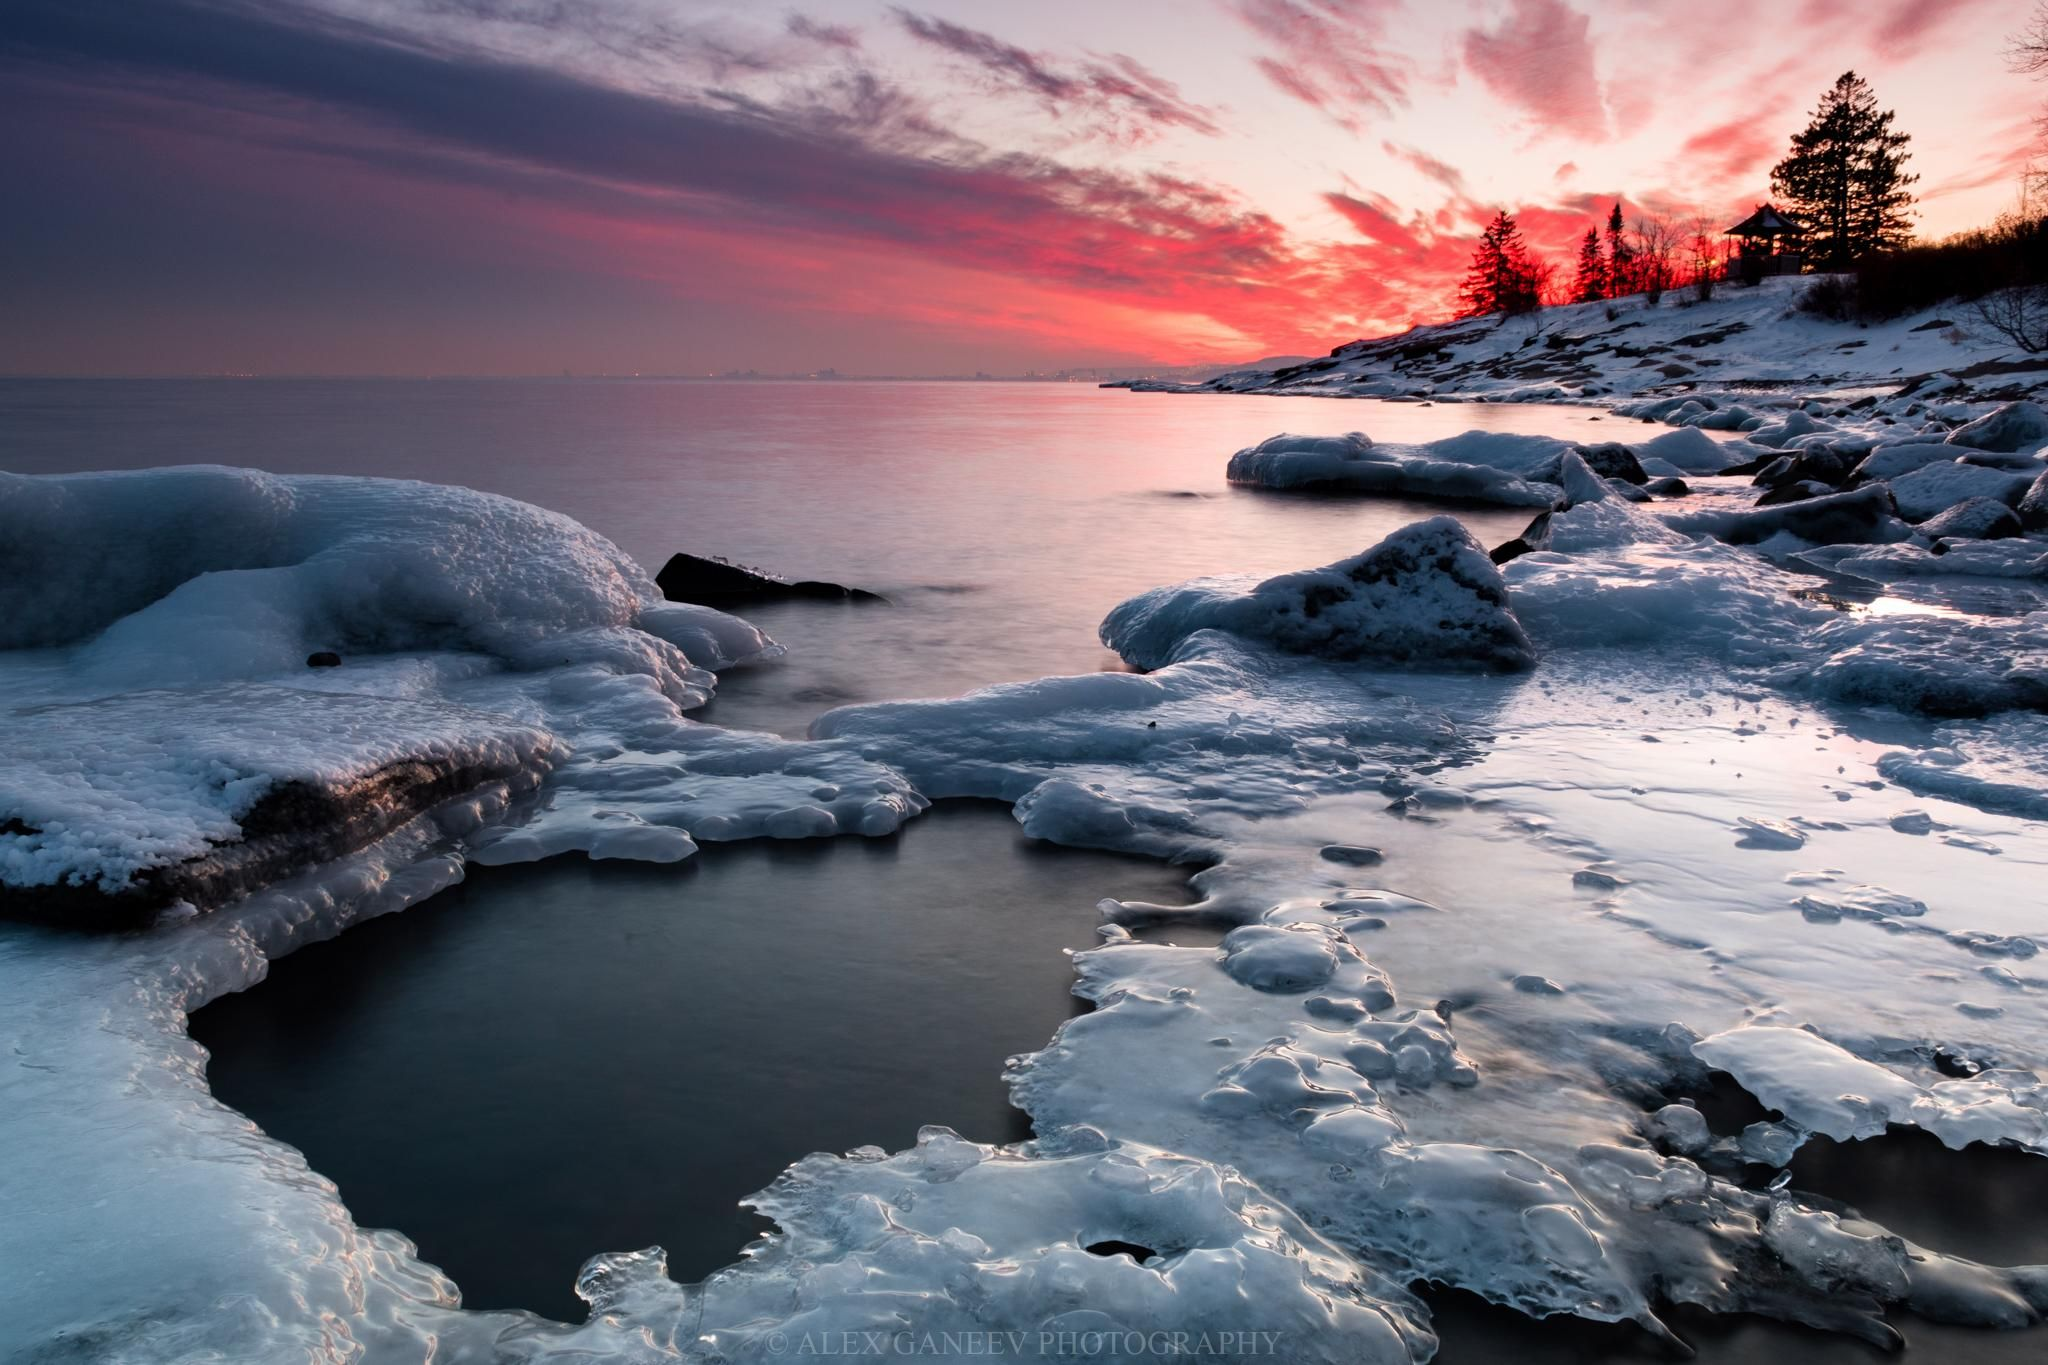 A Song Of Ice And Fire Duluth Minnesota Sunset At Brighton Beach 5798 Winter Landscape Photography Winter Photography Nature Beautiful Photography Nature